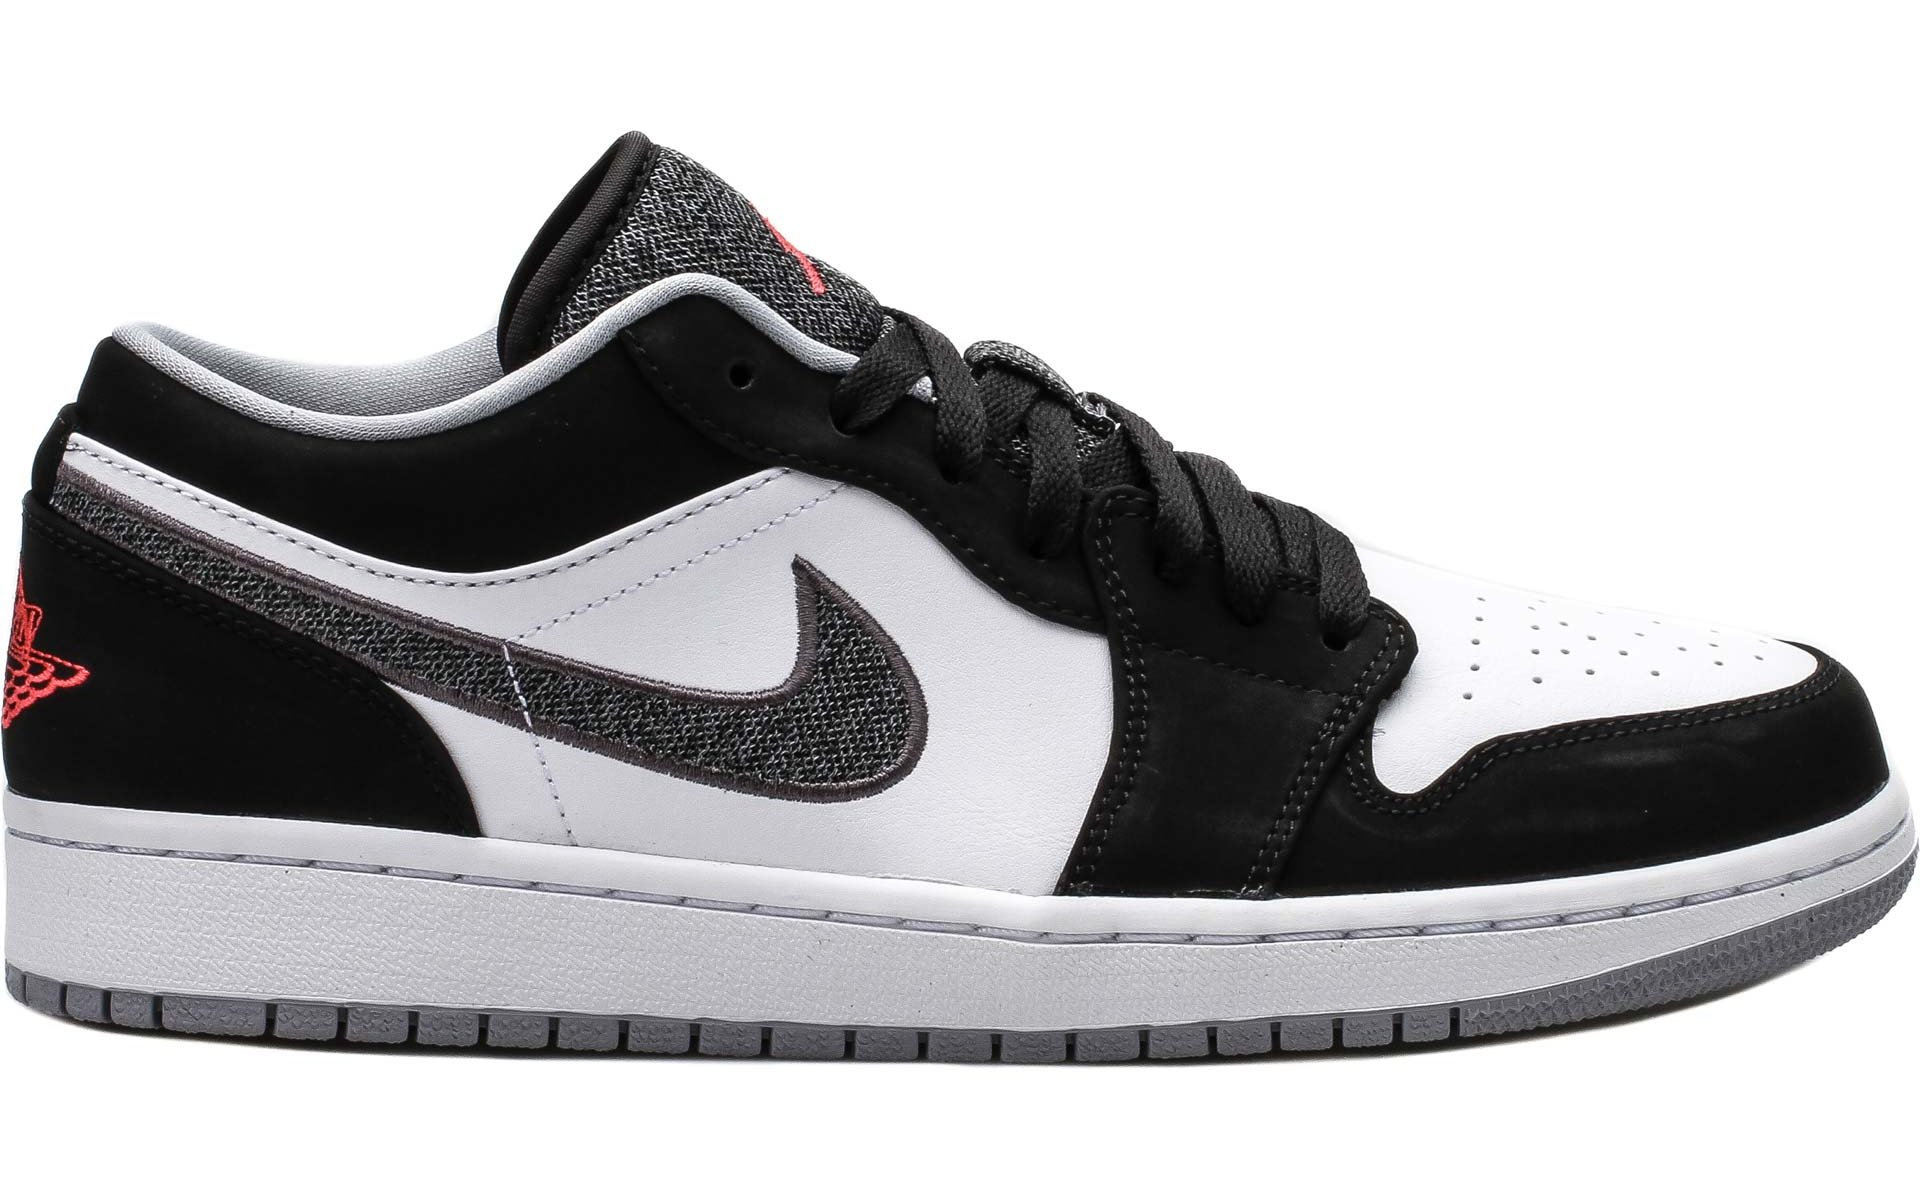 Air Jordan 1 Low Lifestyle \u2013 Black / Infrared 23-White-Grey | Sneaker Press